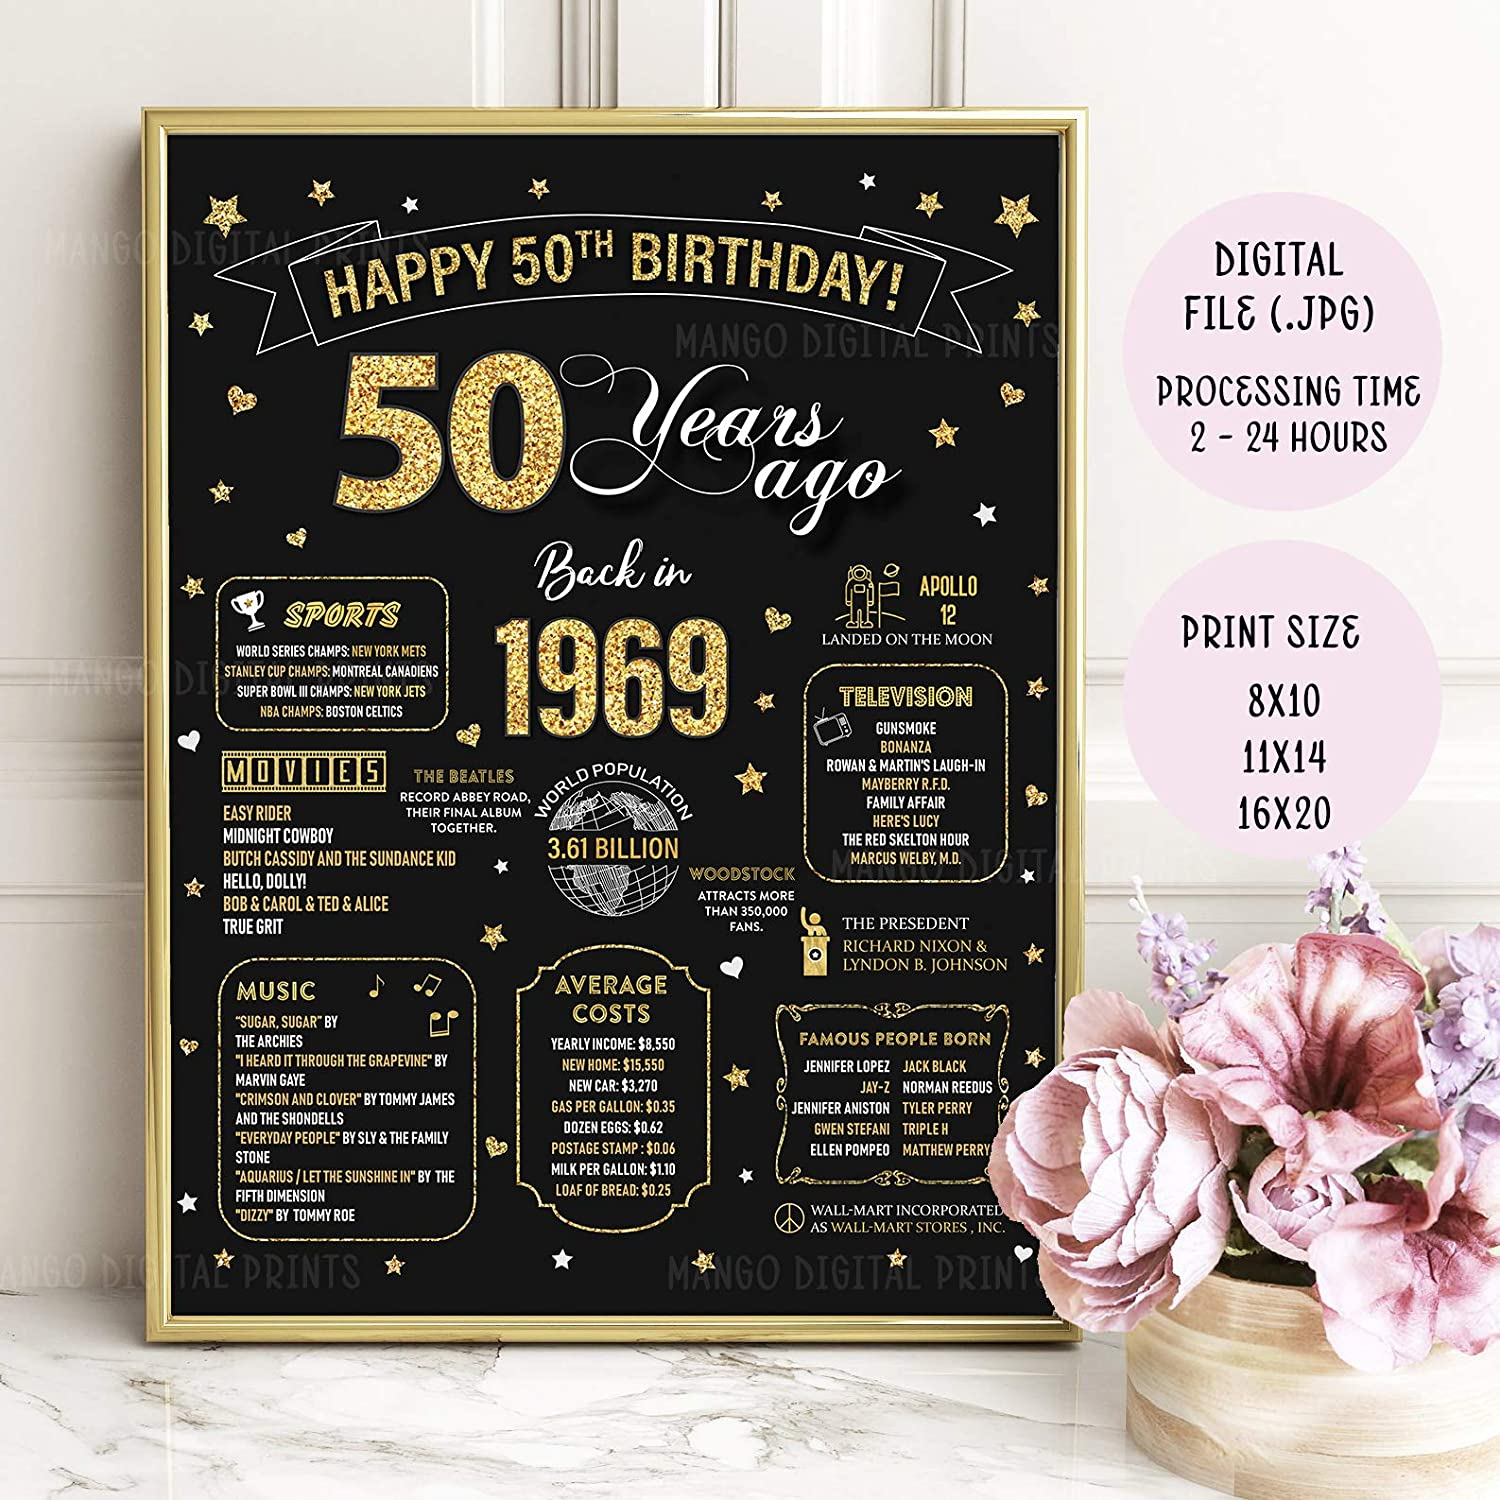 50th Birthday Party Ideas For A Woman.Amazon Com 50th Birthday Decorations Gifts For Women Or Men